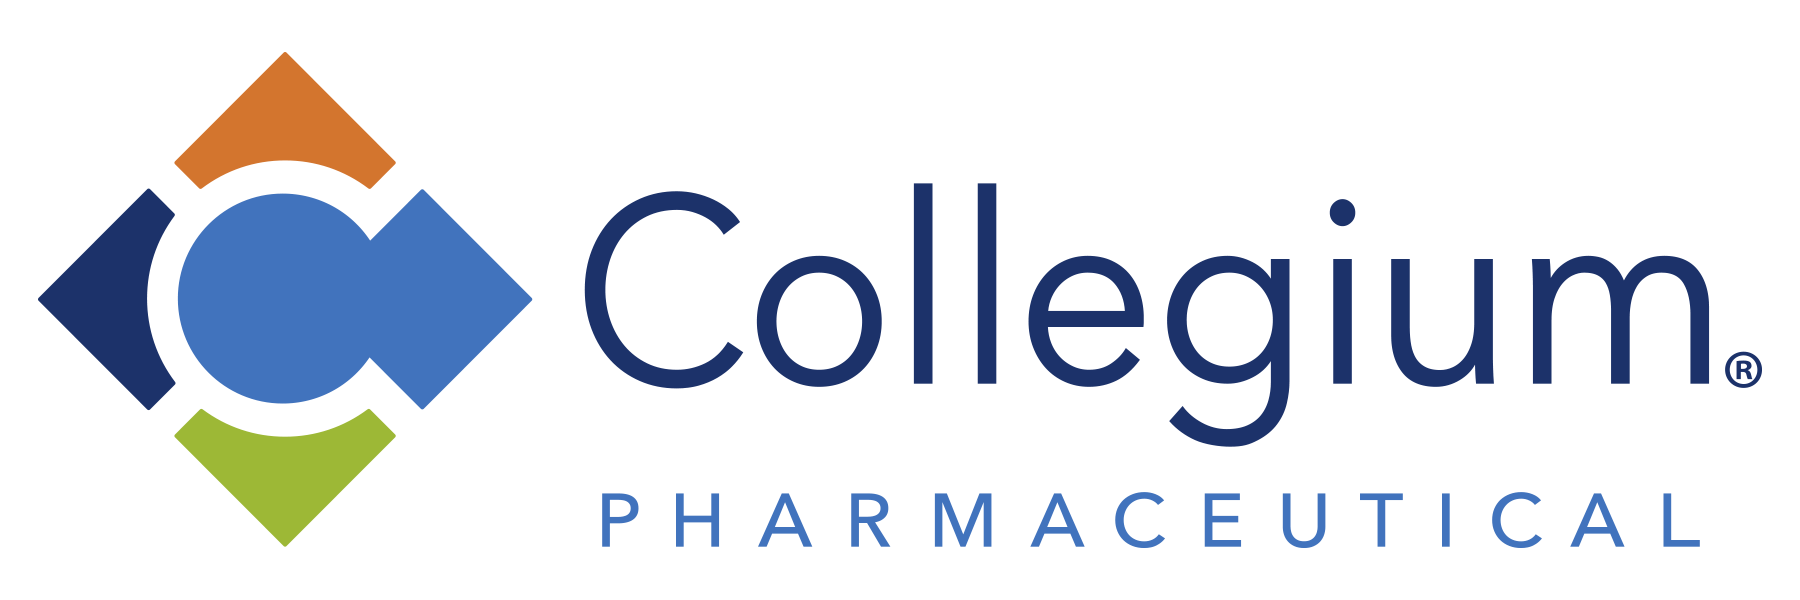 Collegium Pharmaceutical